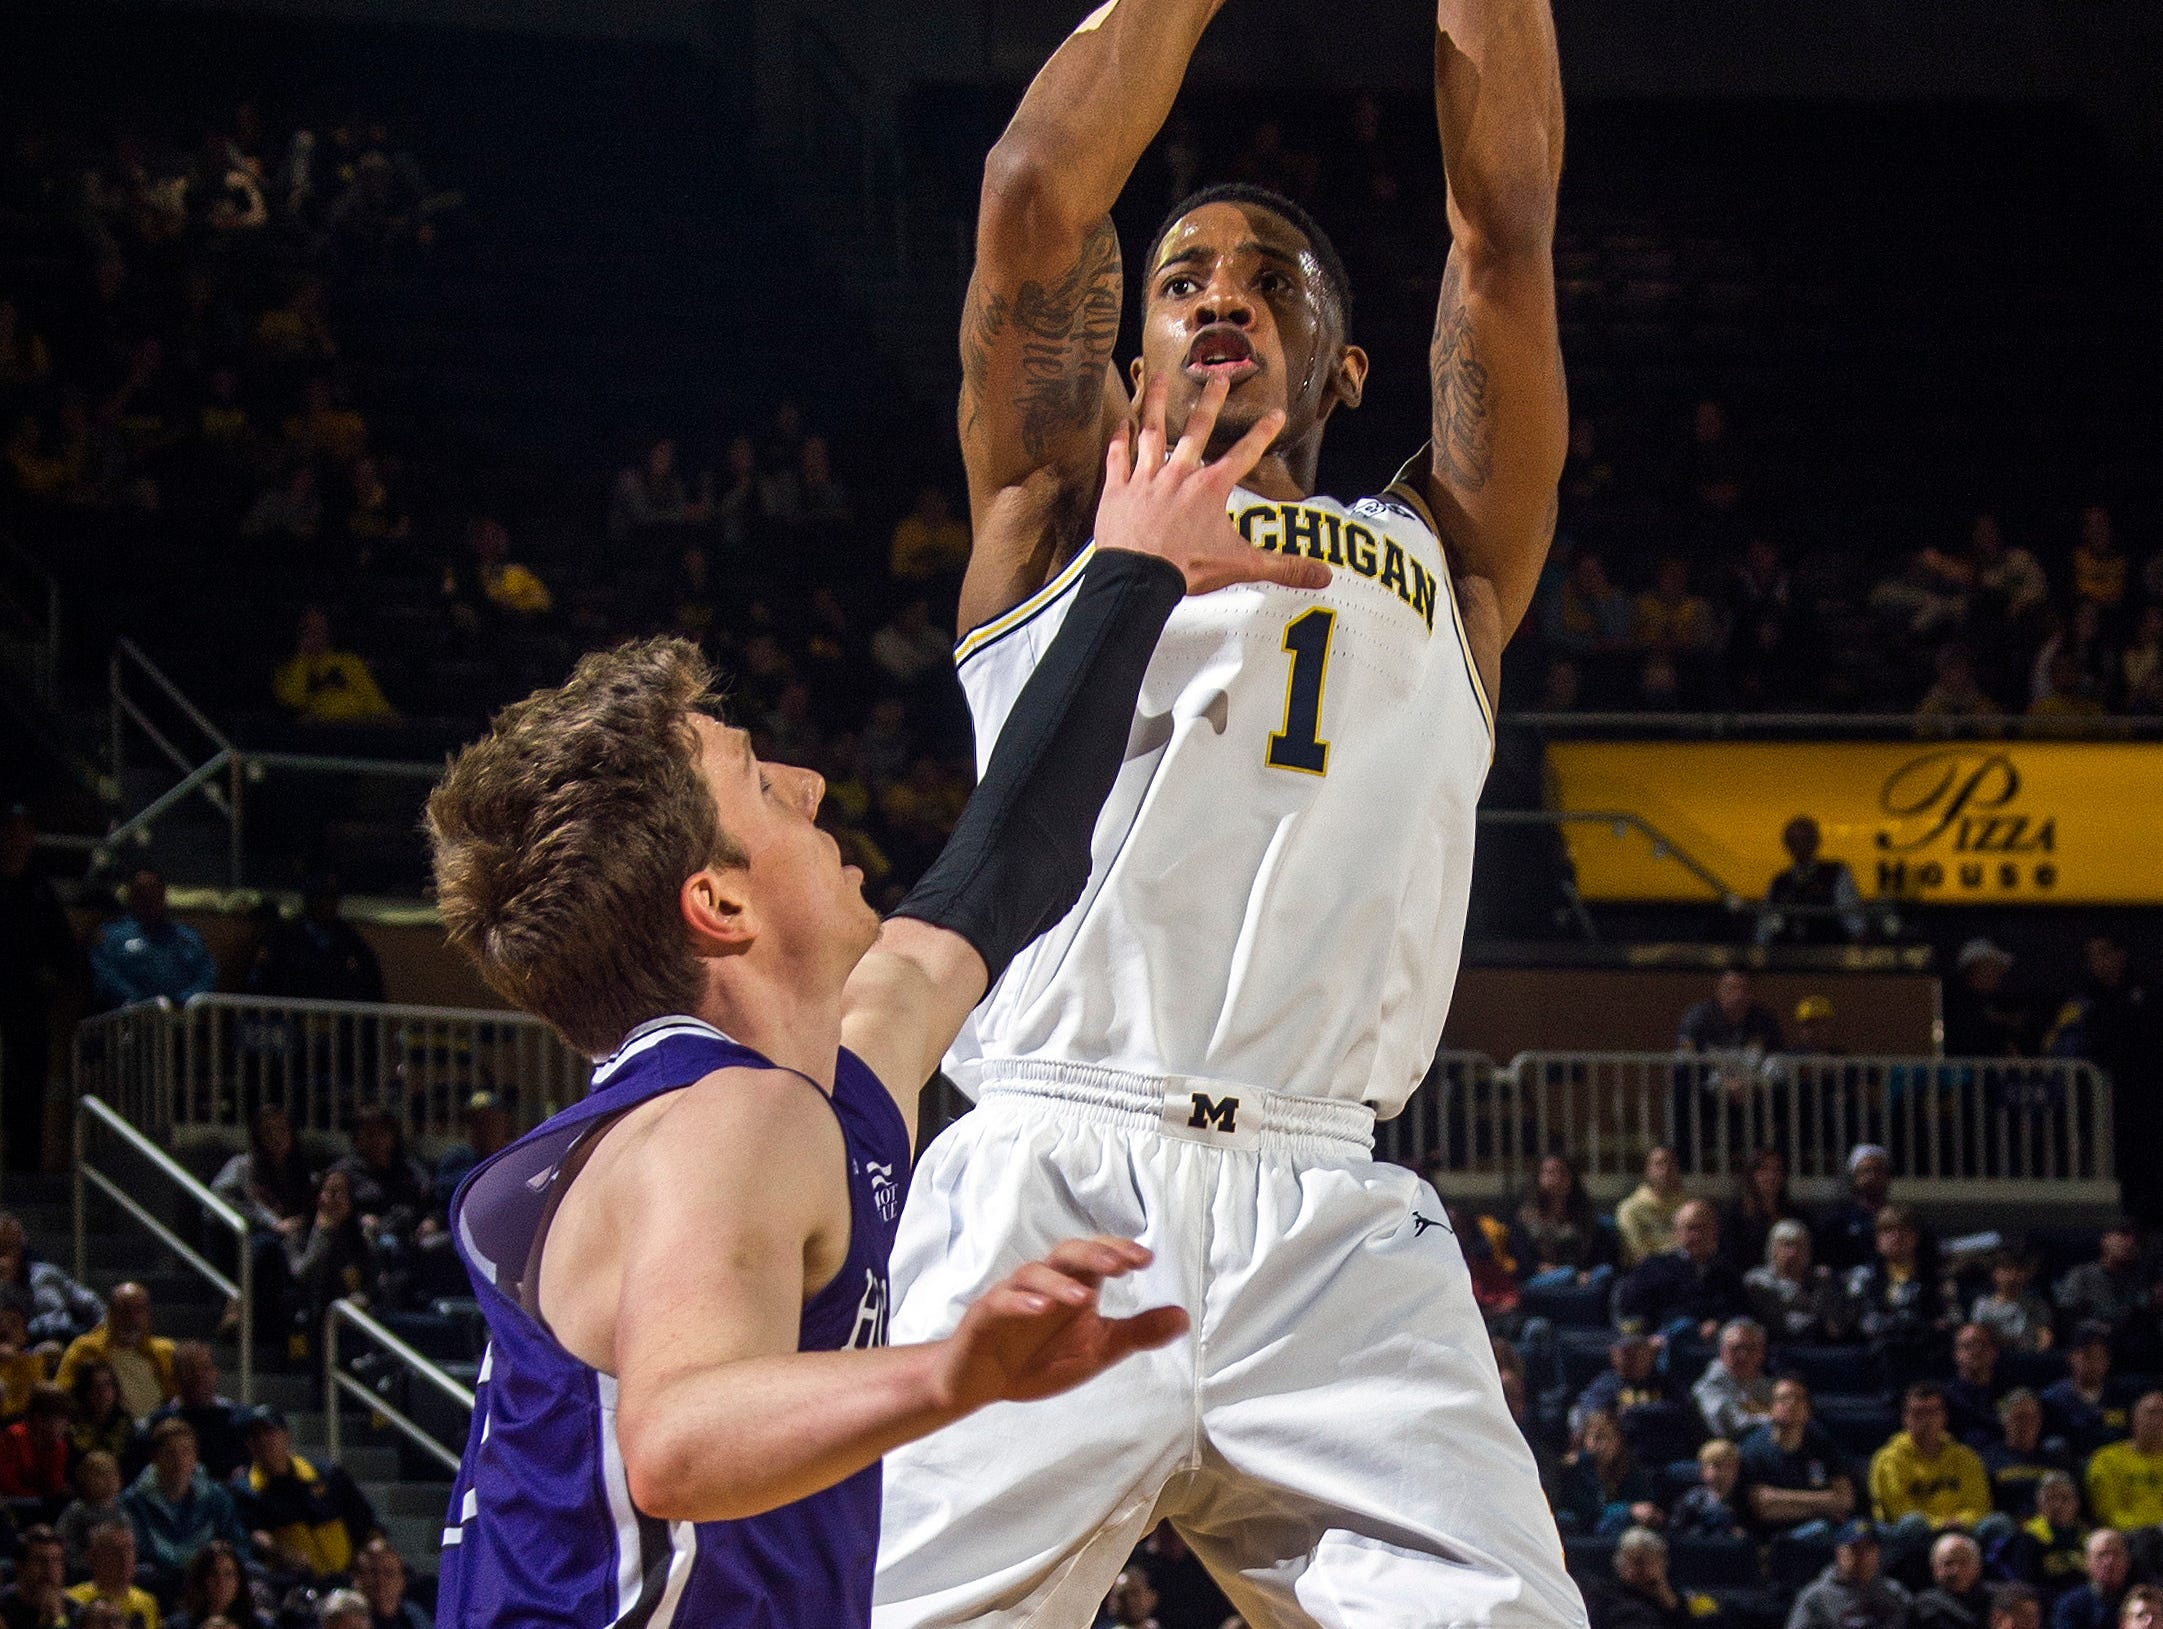 Holy Cross forward Connor Niego (5) defends against a shot-attempt by Michigan guard Charles Matthews (1) in the second half of an NCAA college basketball game at Crisler Center in Ann Arbor, Mich., Saturday, Nov. 10, 2018. (AP Photo/Tony Ding)